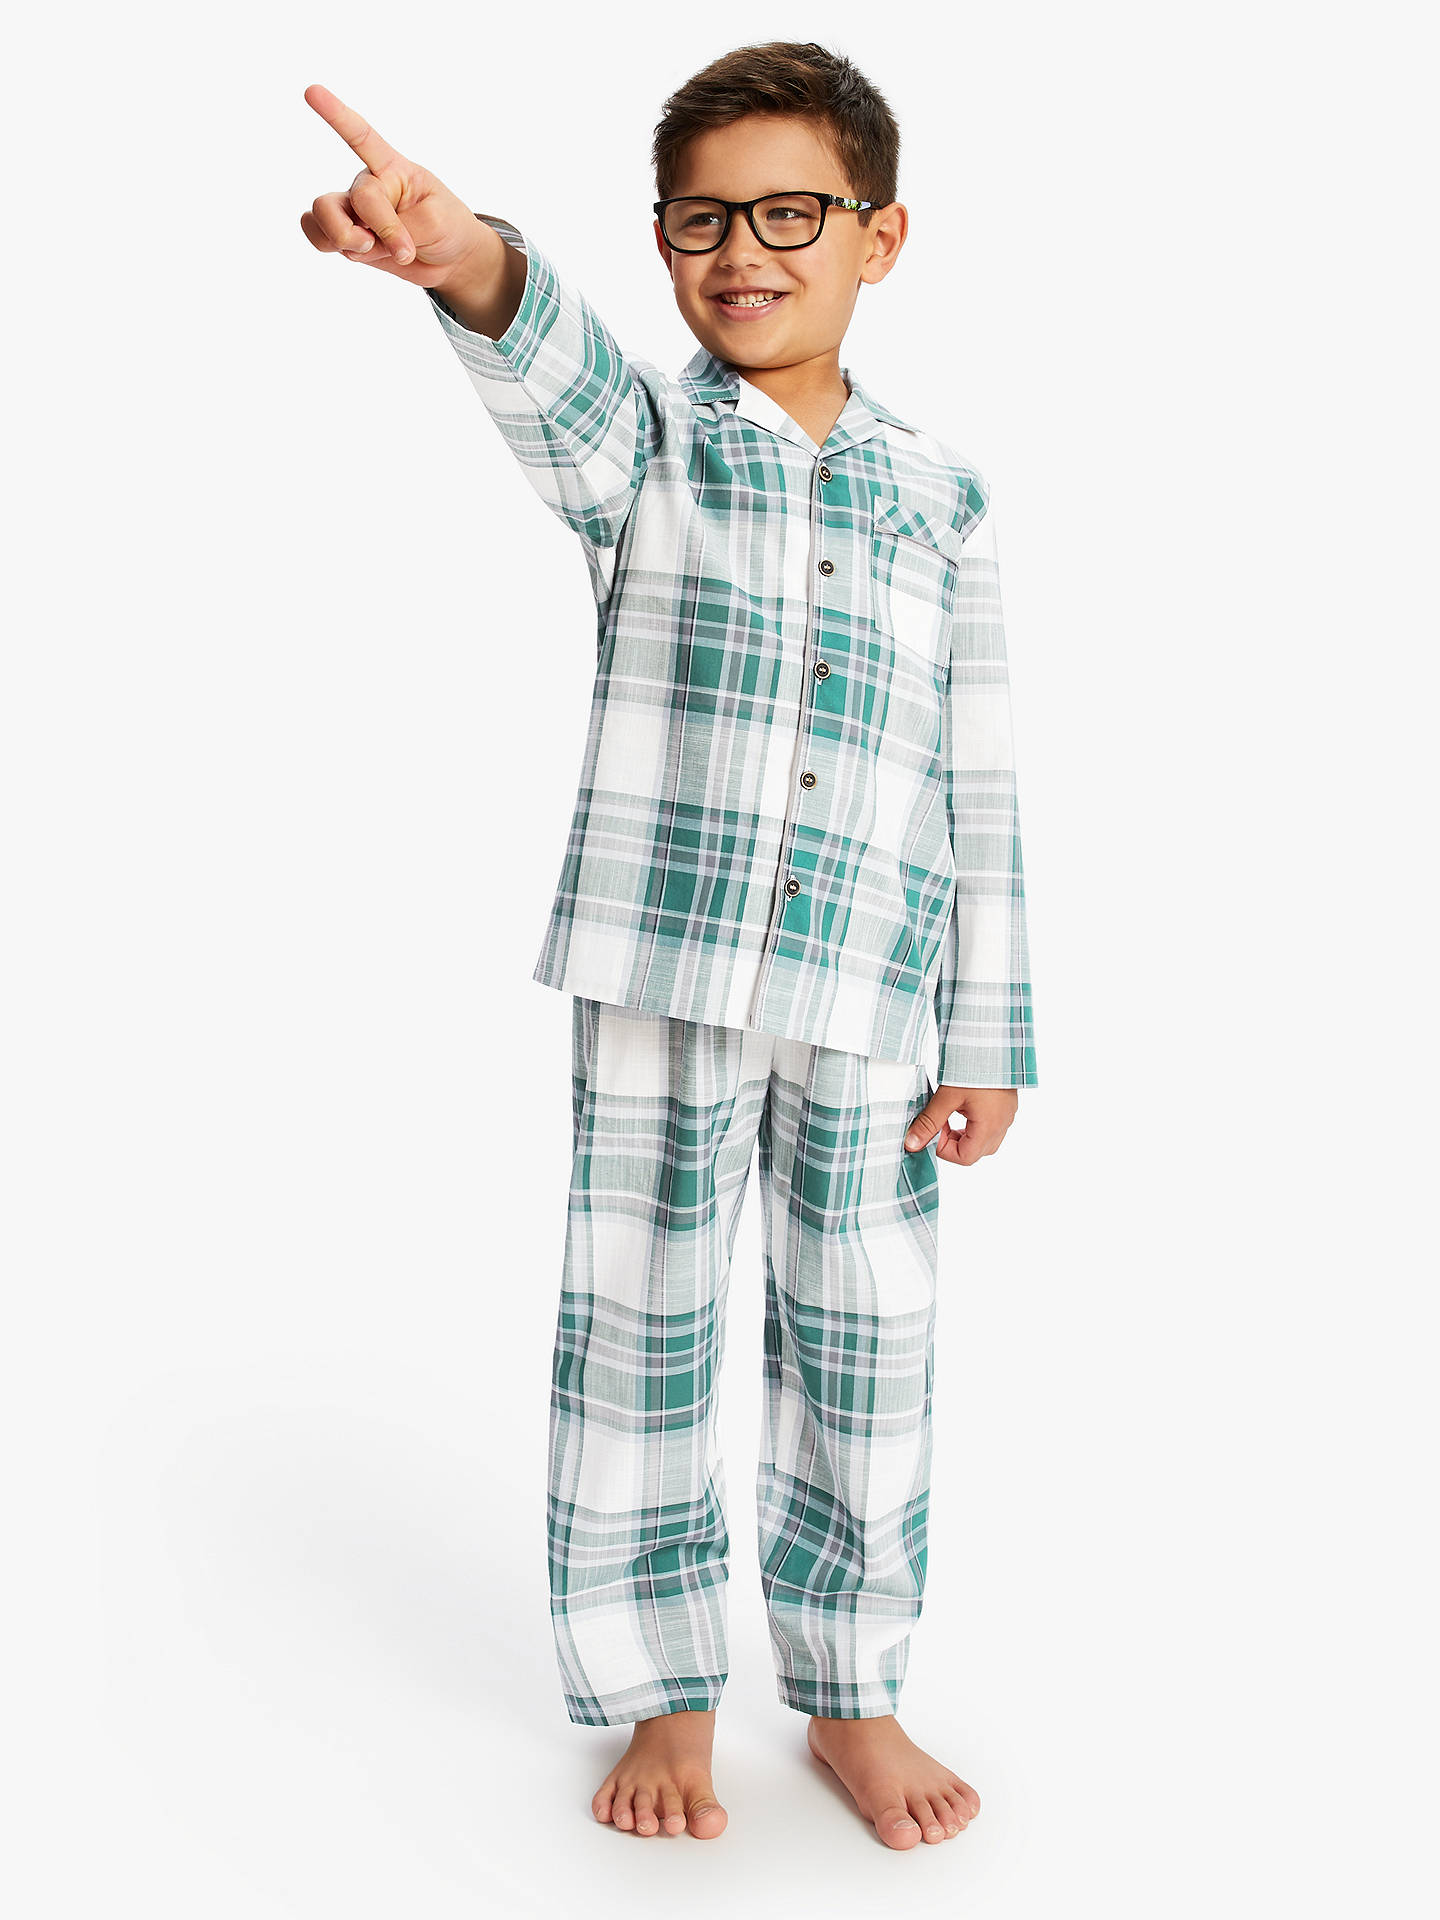 Buy Minijammies Boys' Olive Check Cotton Pyjamas, Green, 8-9 years Online at johnlewis.com